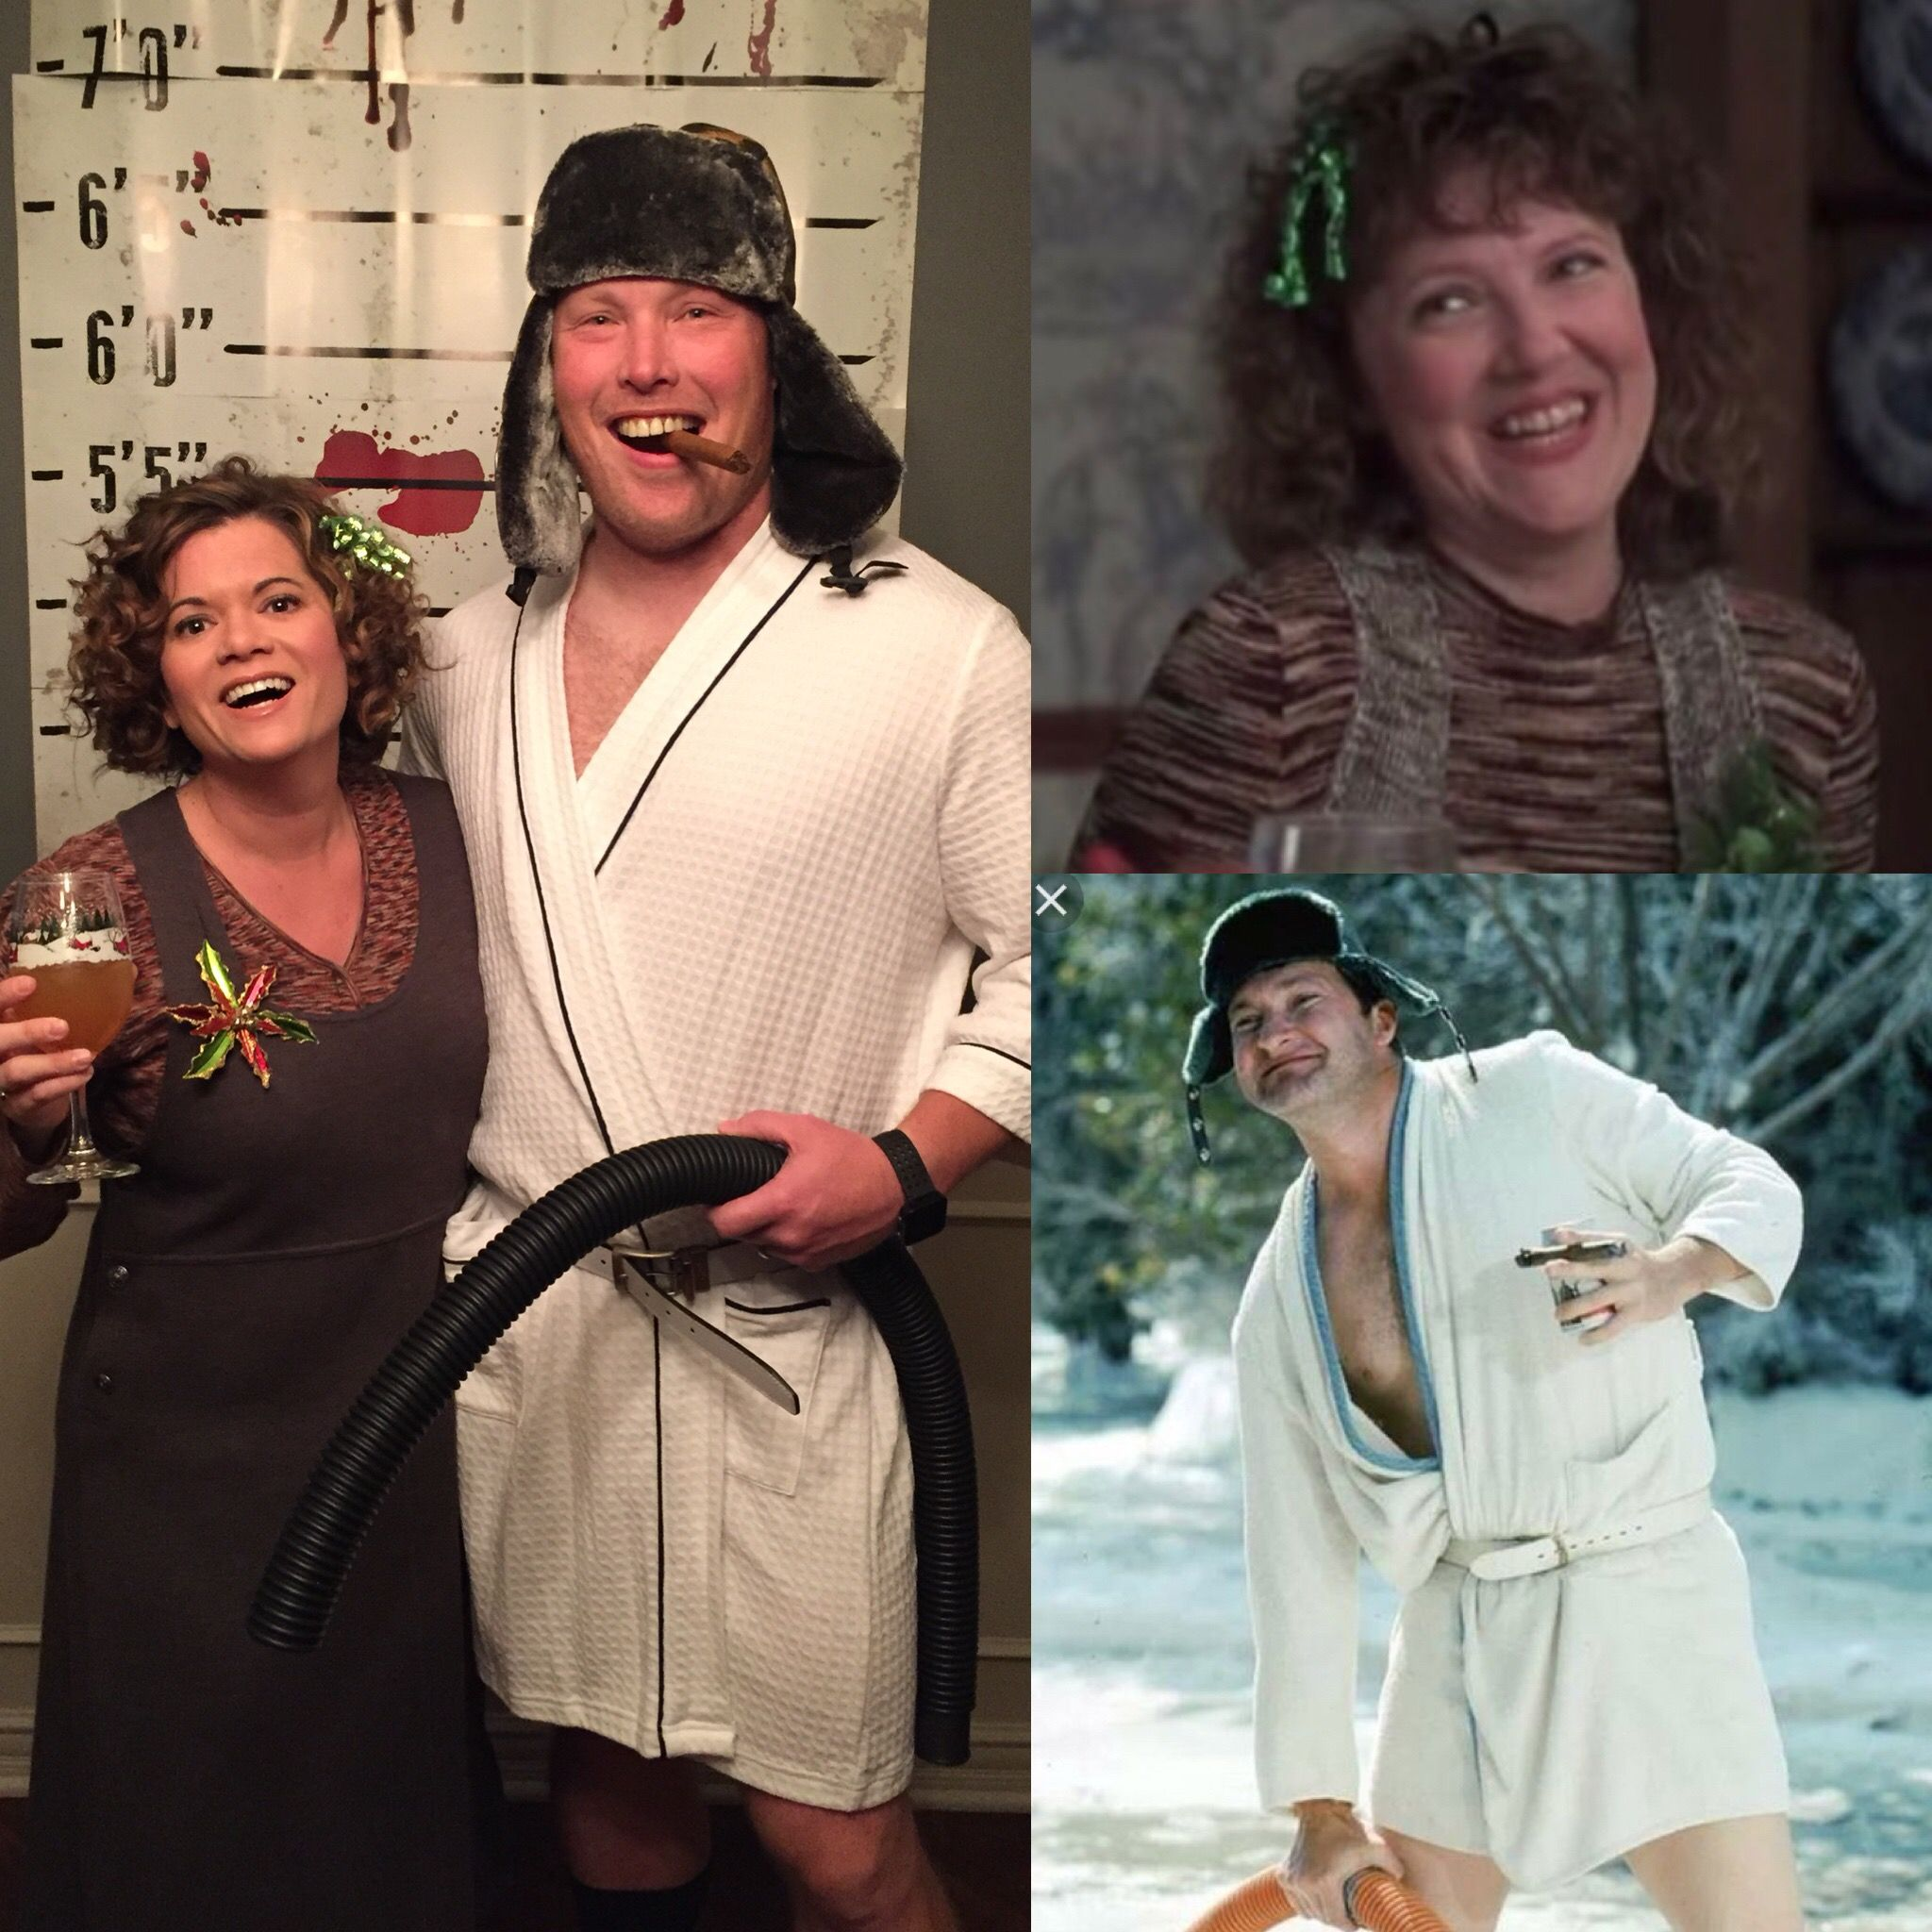 Cousin Eddie & Catherine Christmas vacation costumes